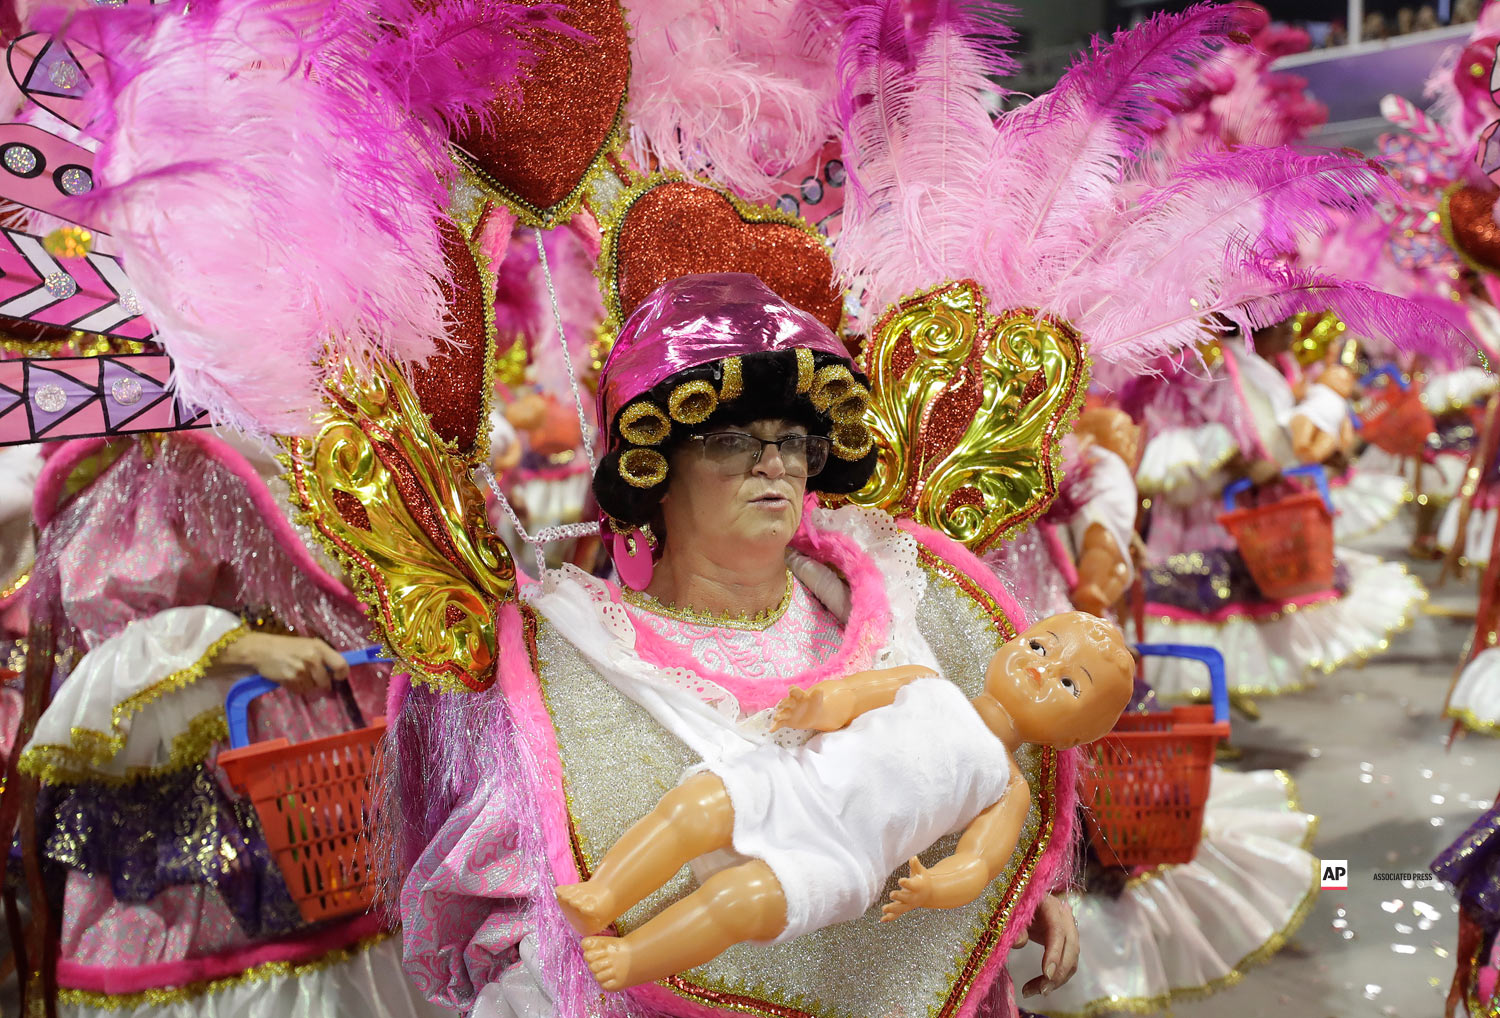 A dancer from the Academicos do Tatuape samba school performs during a carnival parade in Sao Paulo, Brazil, Saturday, March 2, 2019. (AP Photo/Andre Penner)